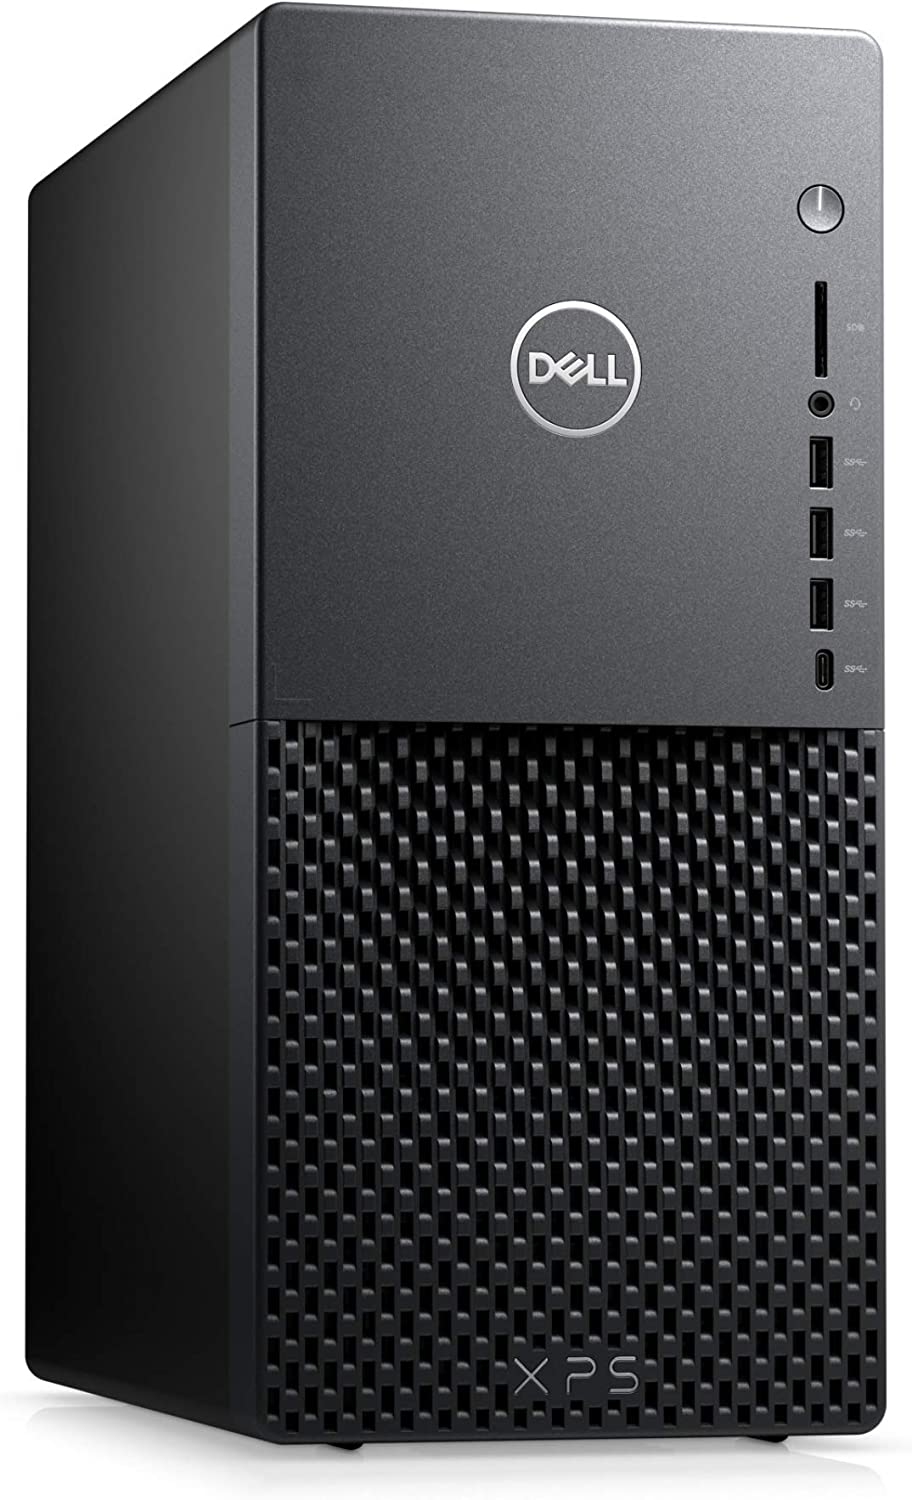 Dell XPS 8940 Gaming Desktop (Latest Model) I7-10700(8-CORE, UP to 4.80GHZ) 16GB 2933MHZ RAM 512GB PCIe SSD + 1TB HDD NVidia GTX 1660 Ti 6GB GDDR6 WiFi 6 Win 10 Home (Renewed)